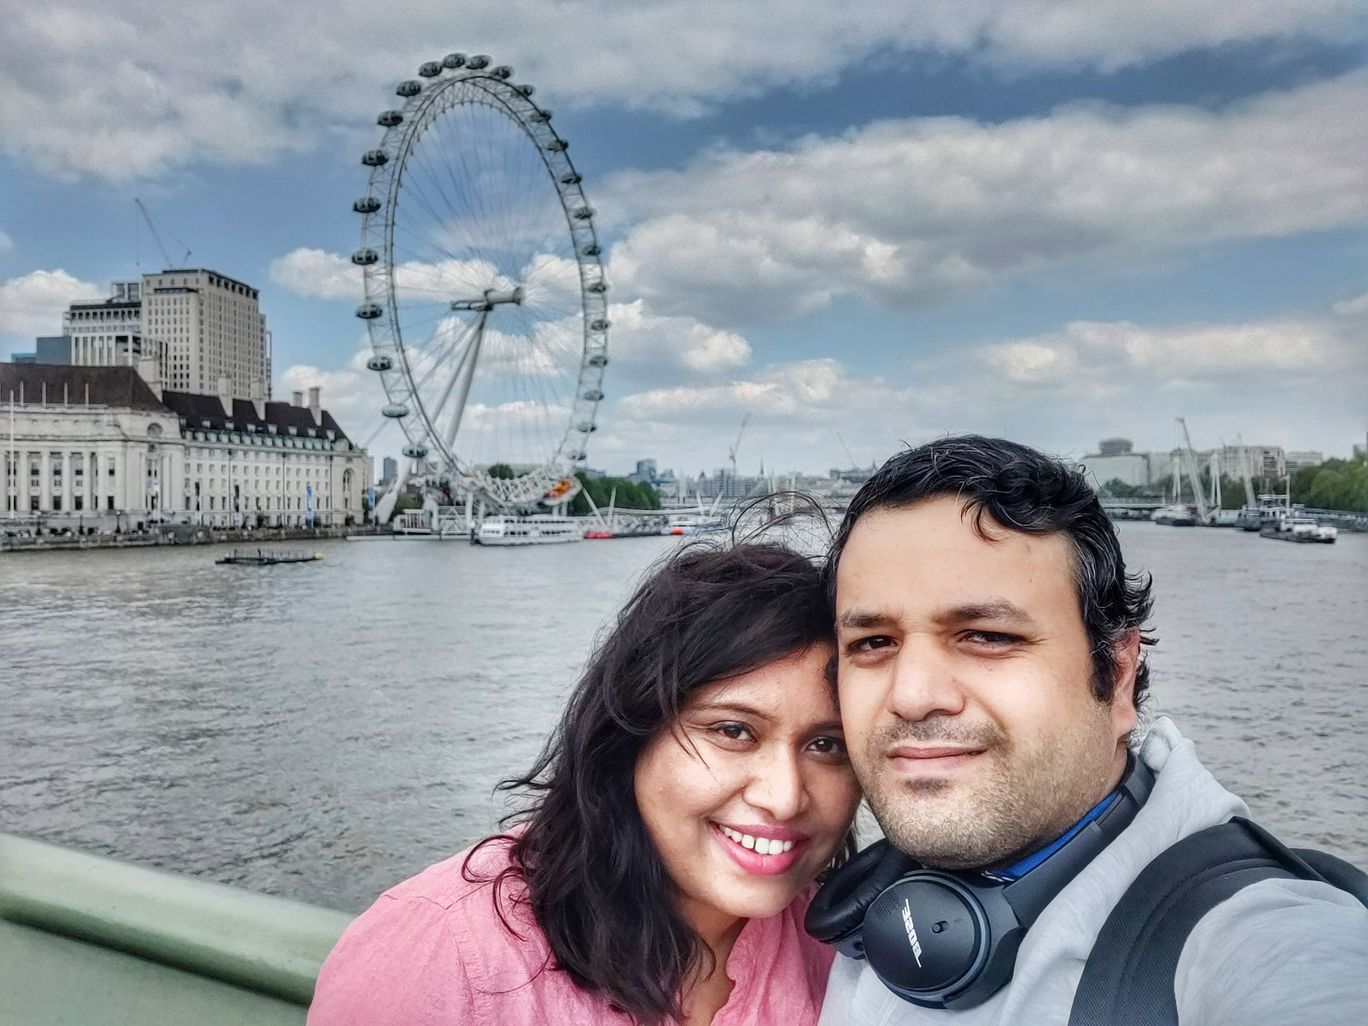 Photo of London By suman k.s